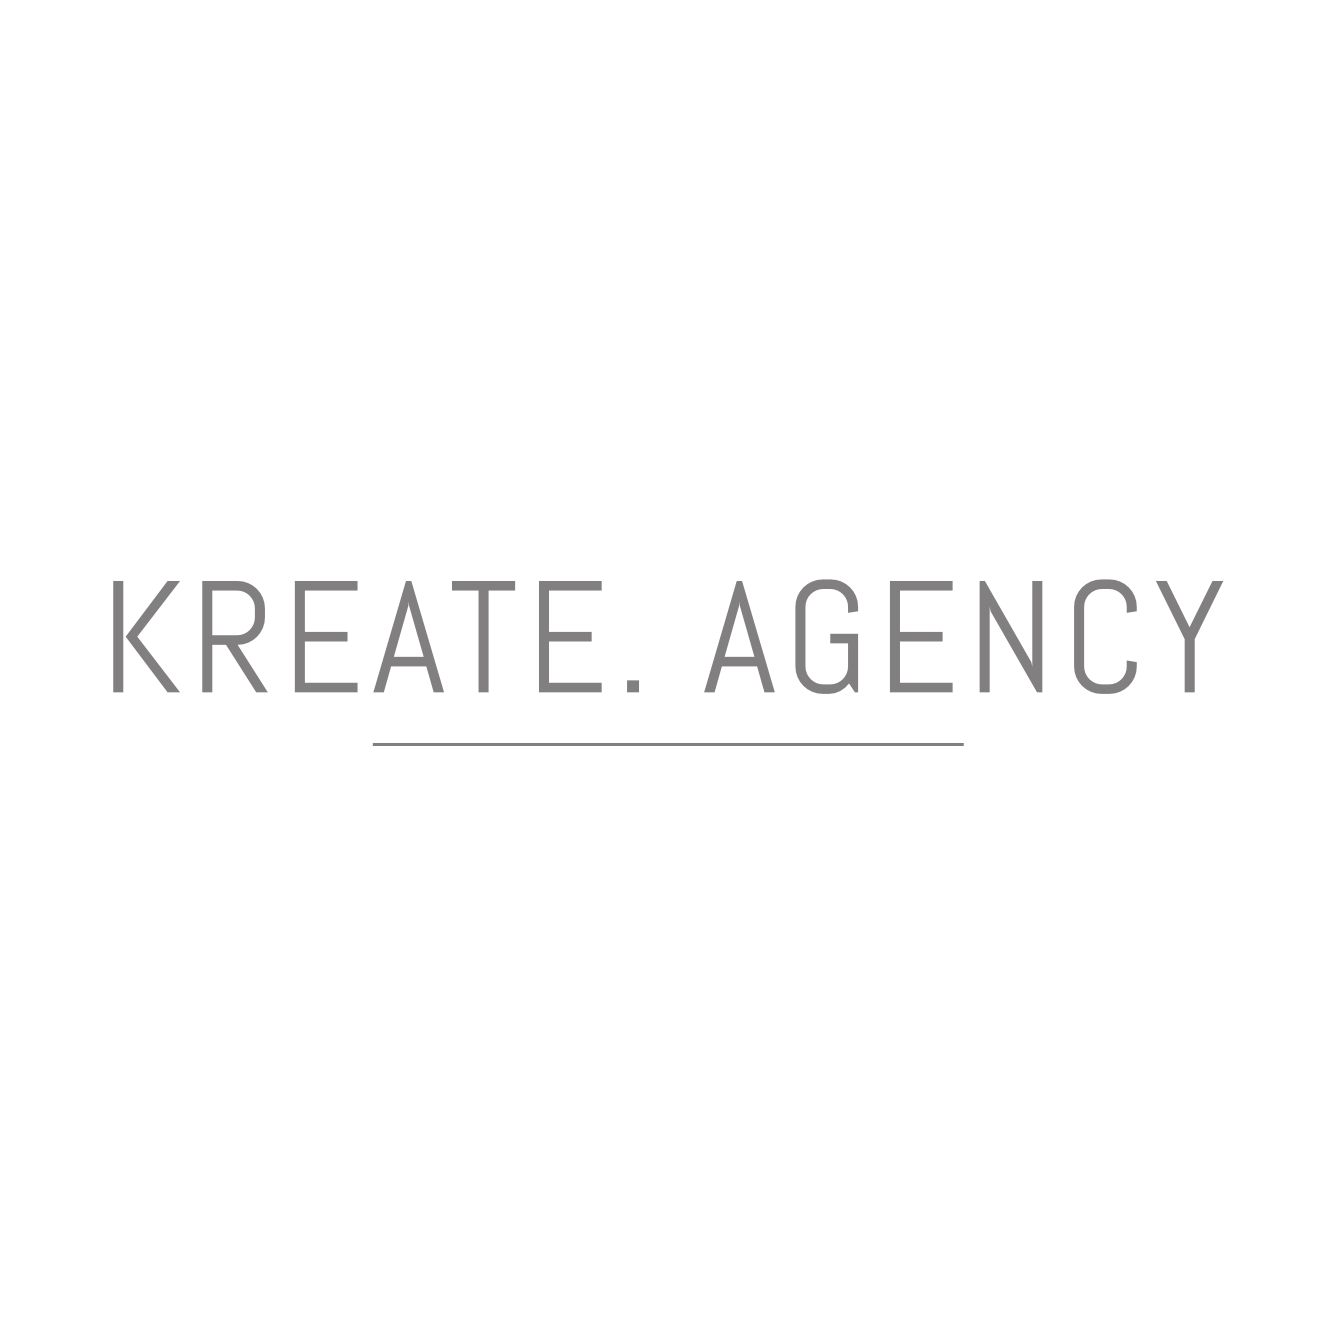 Kreate Agency